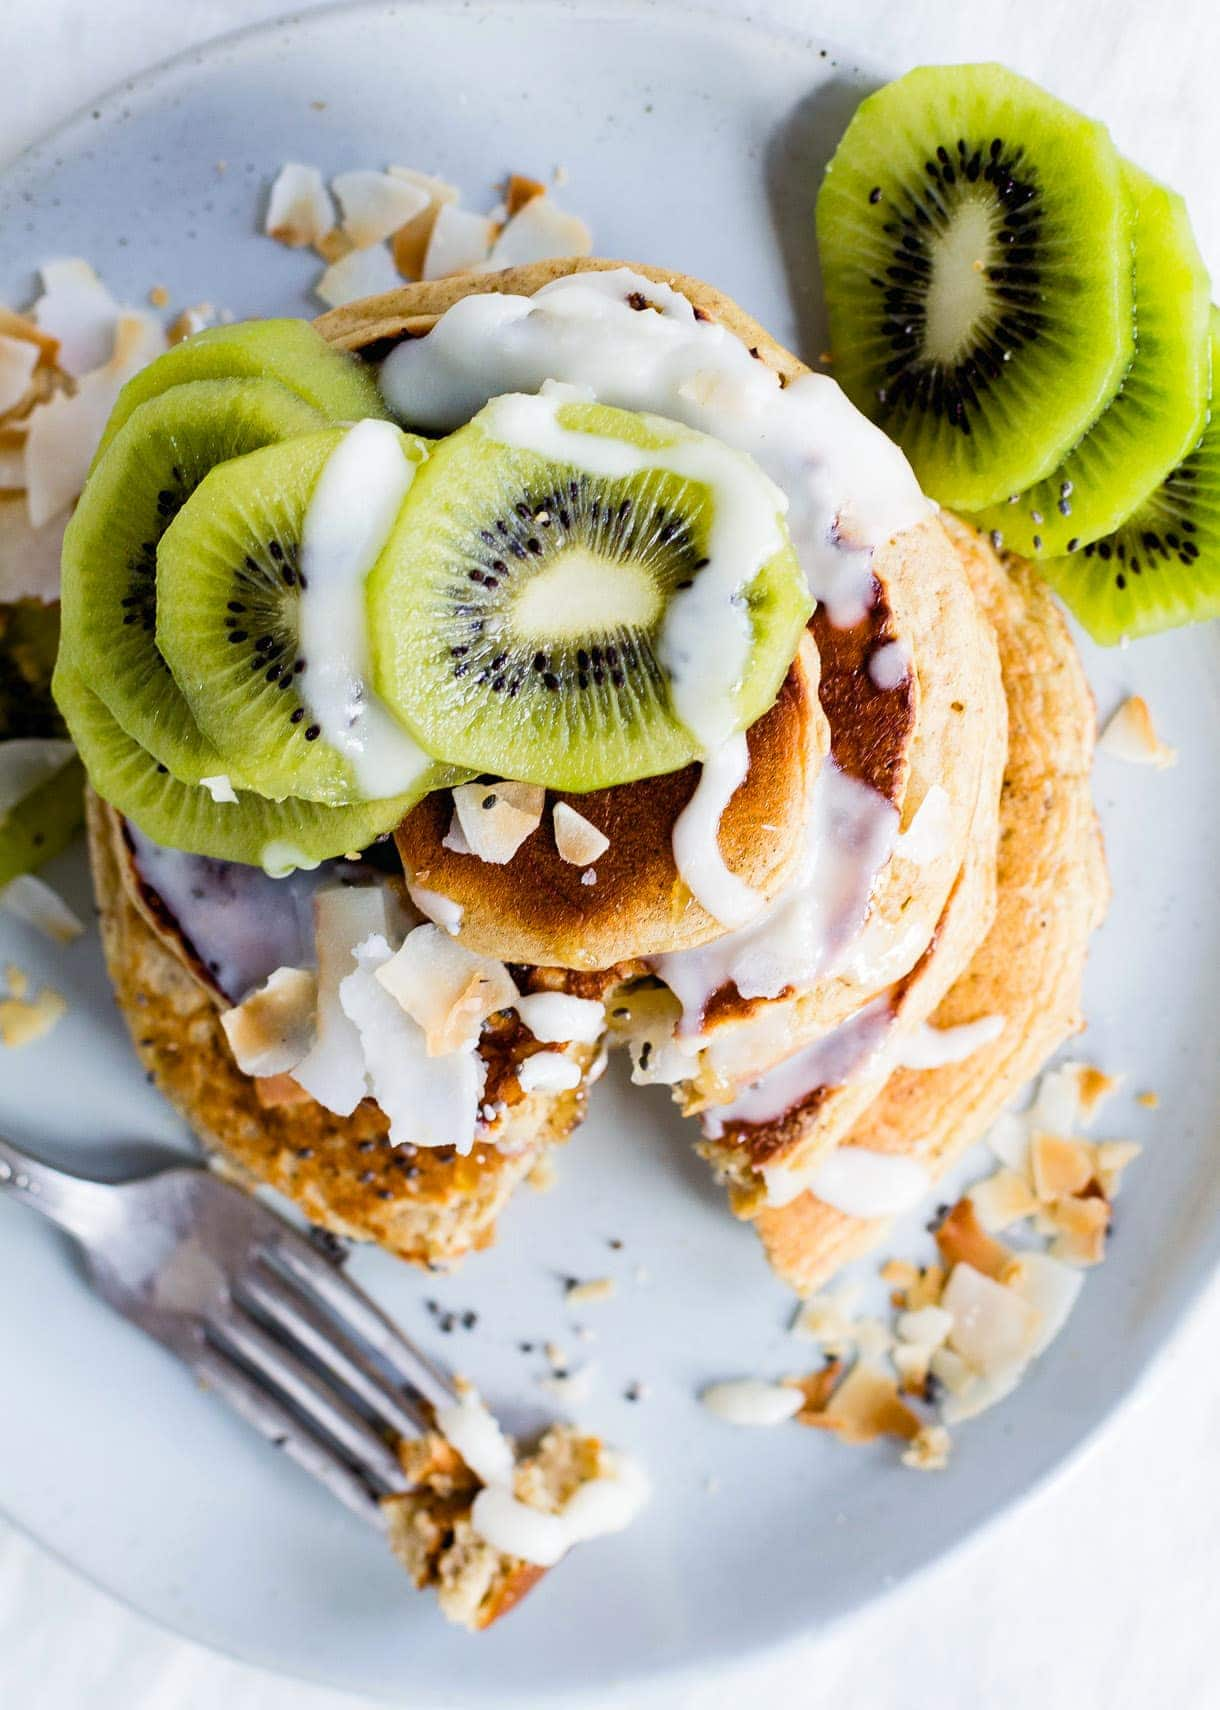 Fluffy Gluten-Free Pancakes with Coconut Butter Drizzle & Kiwis.